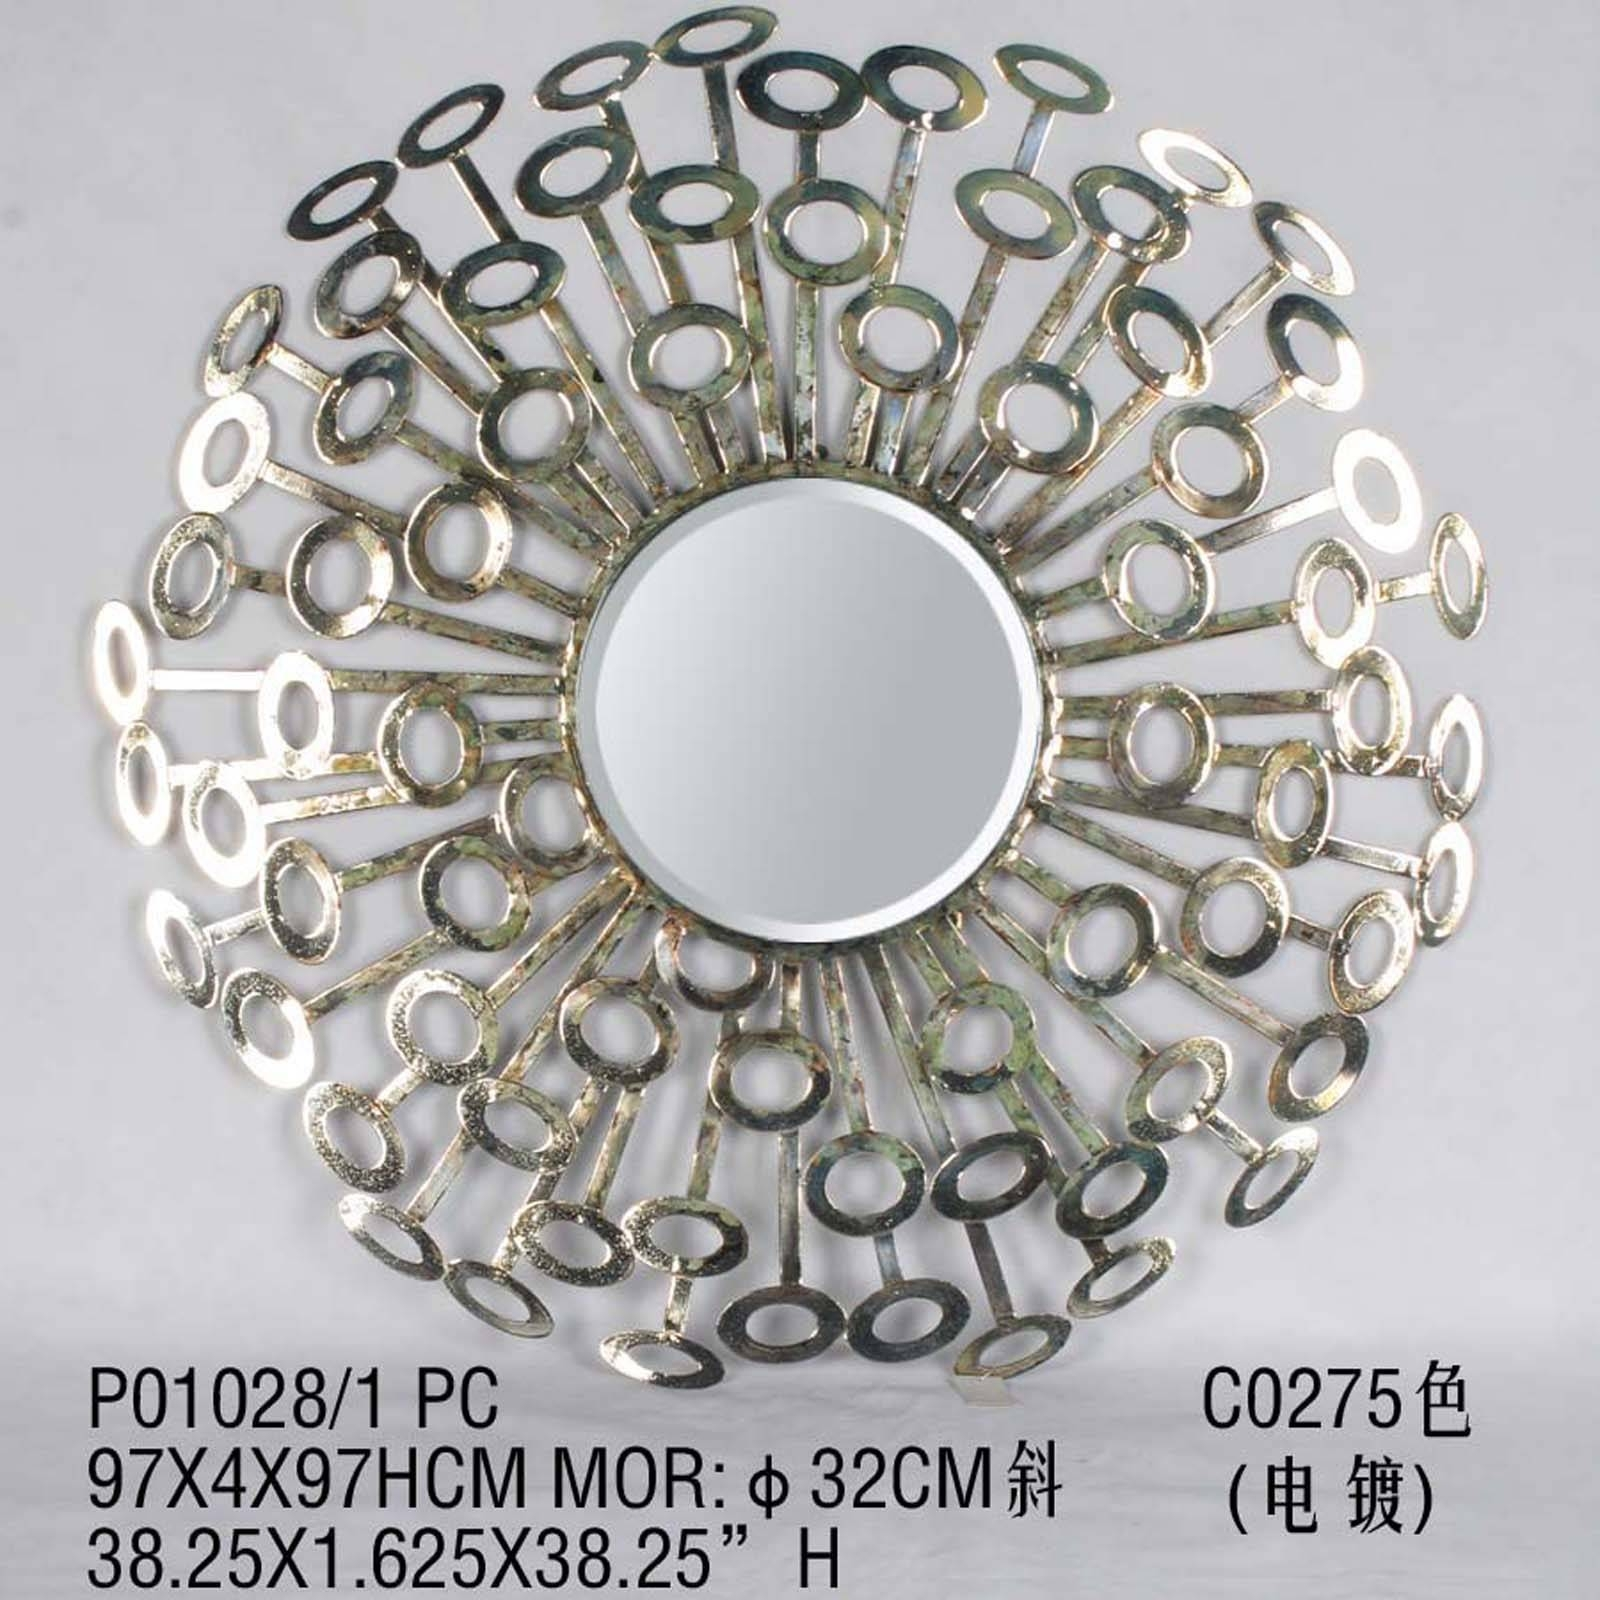 Wall Art Decor: Interior Decoration Metal Wall Art With Mirrors Pertaining To Newest Round Metal Wall Art (View 11 of 20)